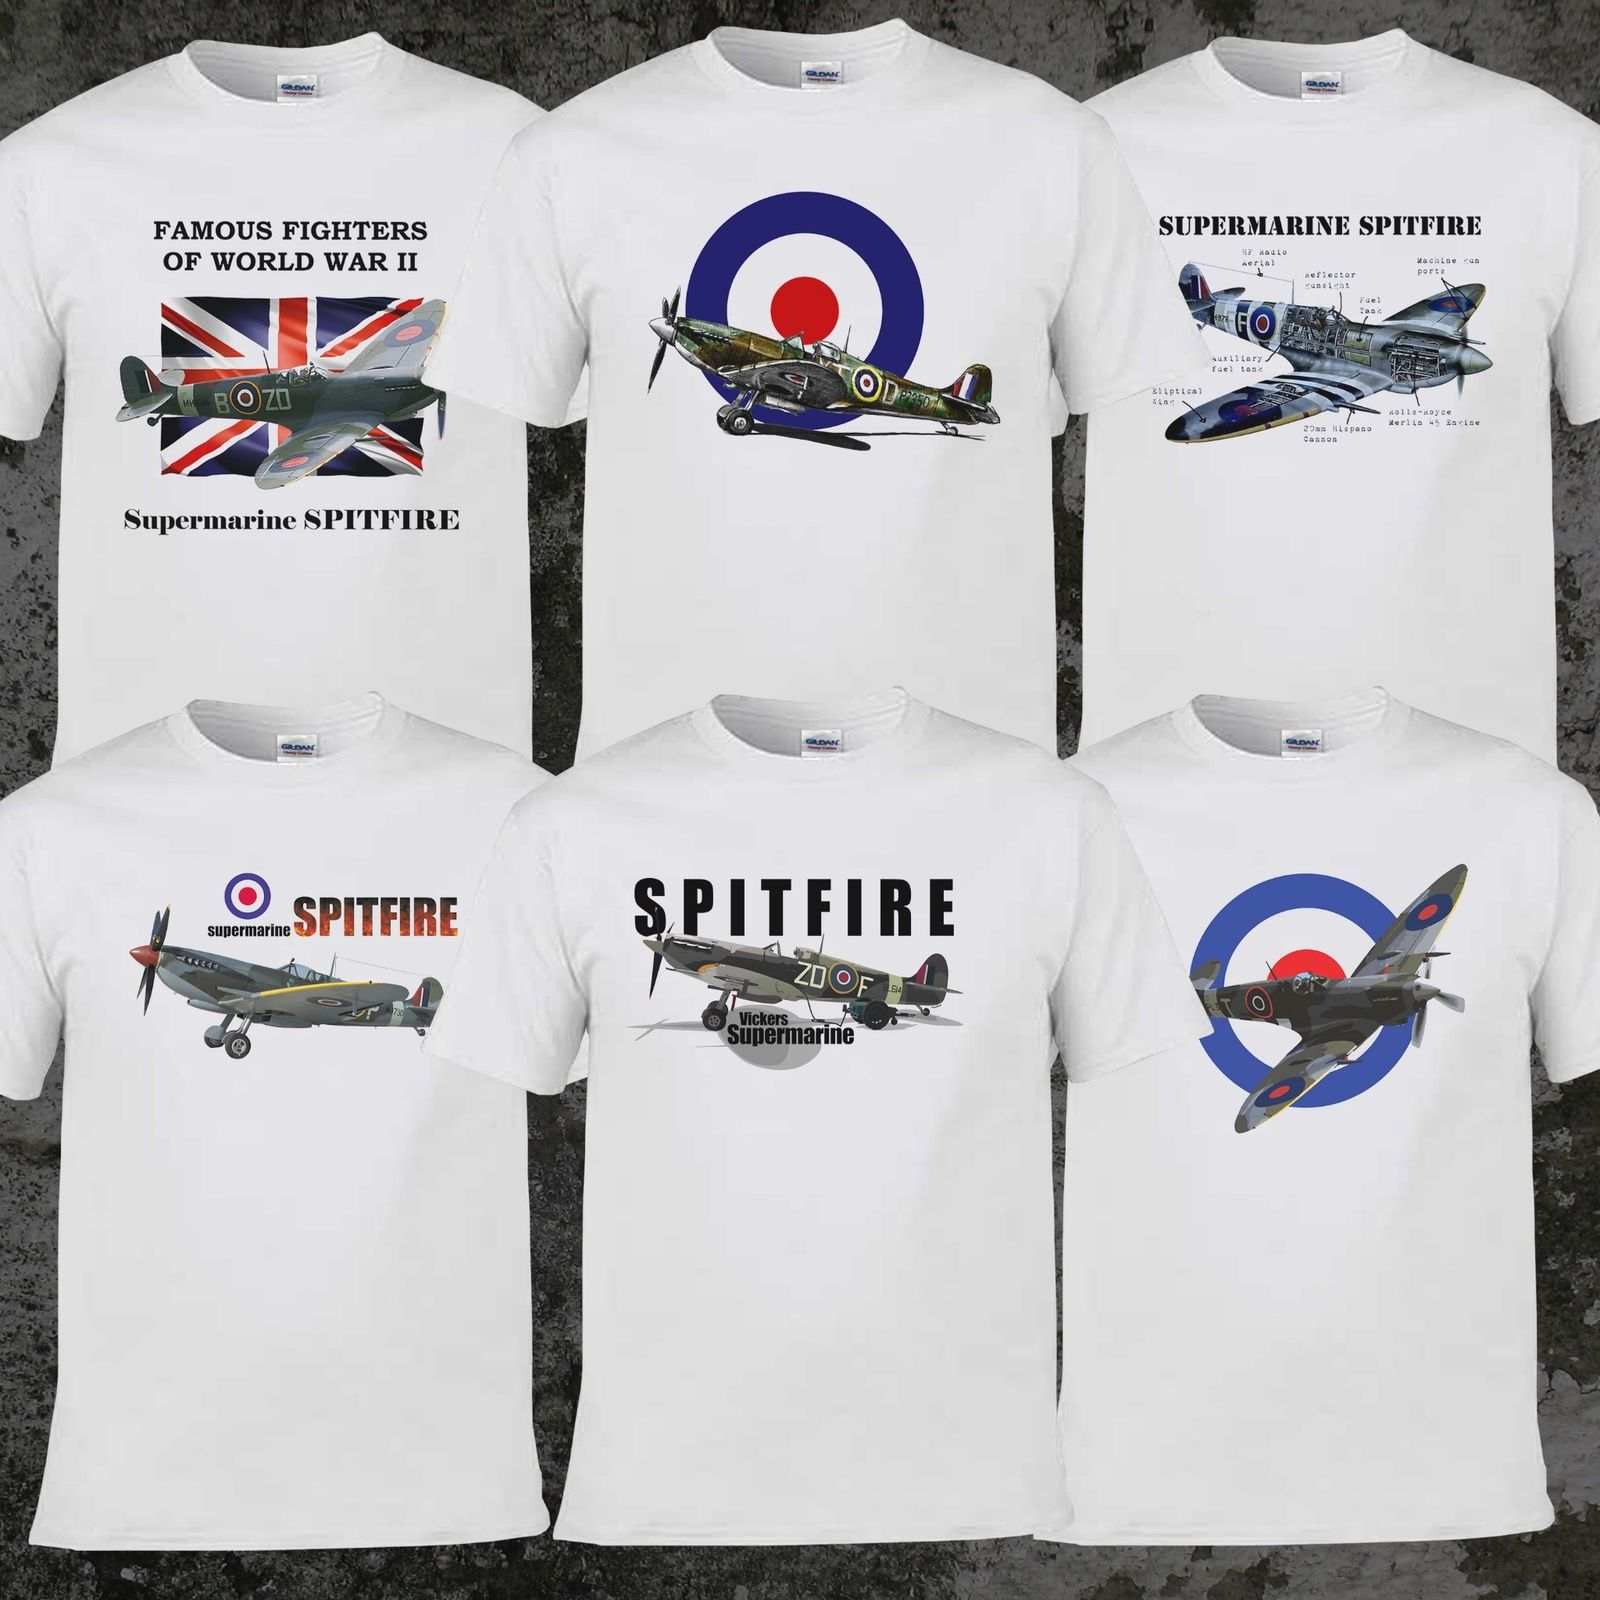 2019 Hot Sale 100% Cotton Fashion Famous Fighters Supermarine Spitfire Simple Casual Style Spitfire T Shirt Tee Shirt